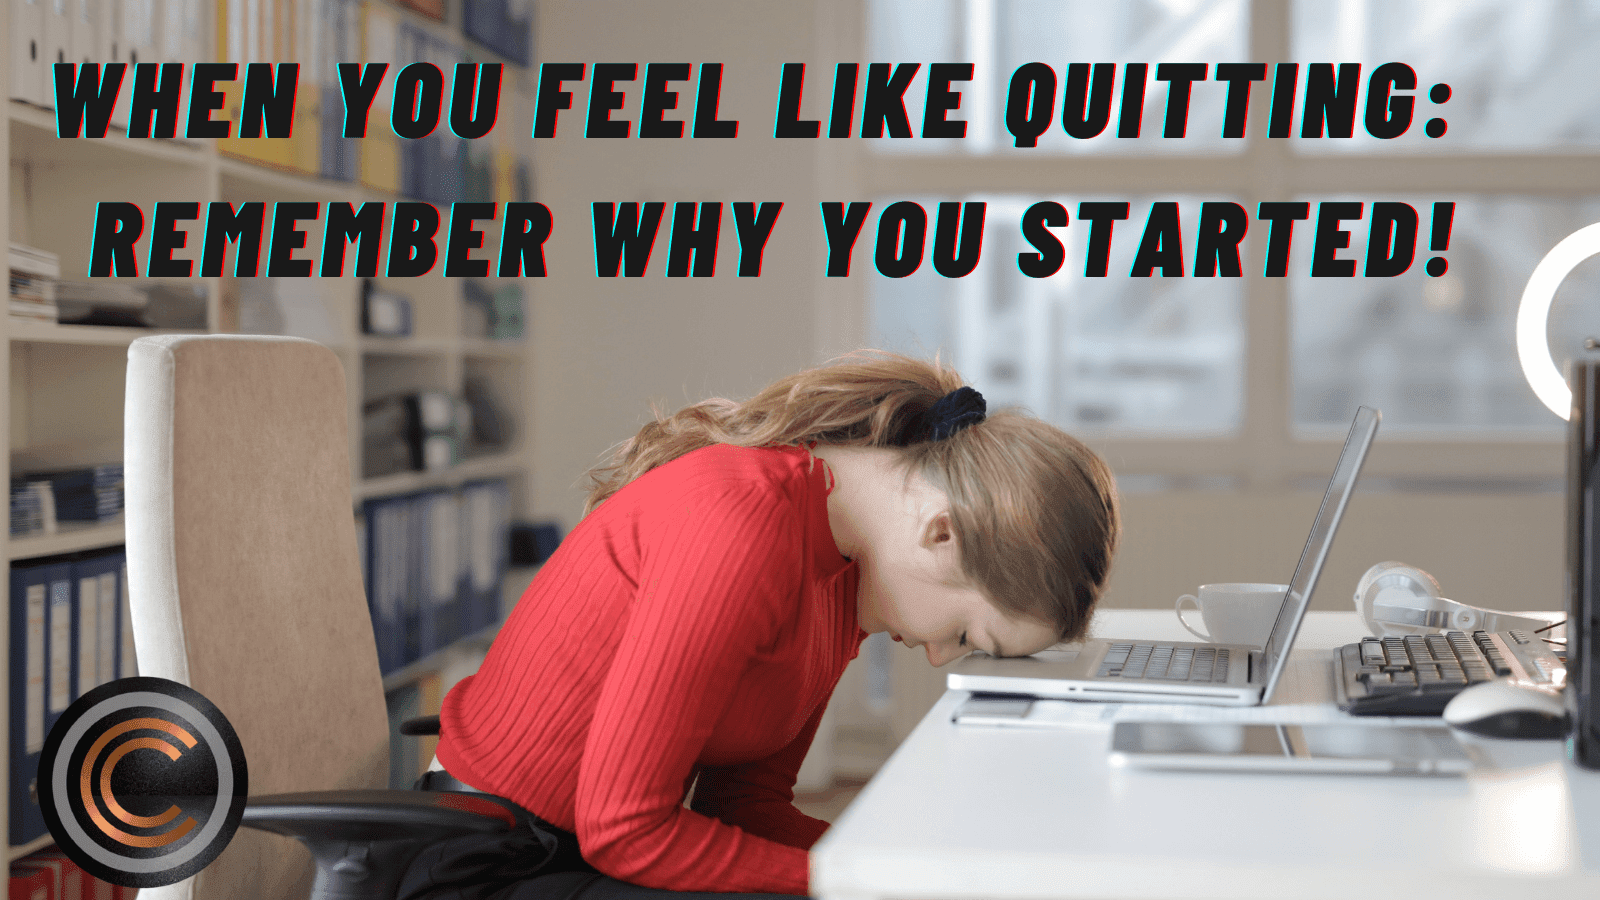 When You Feel Like Quitting: Remember Why You Started!